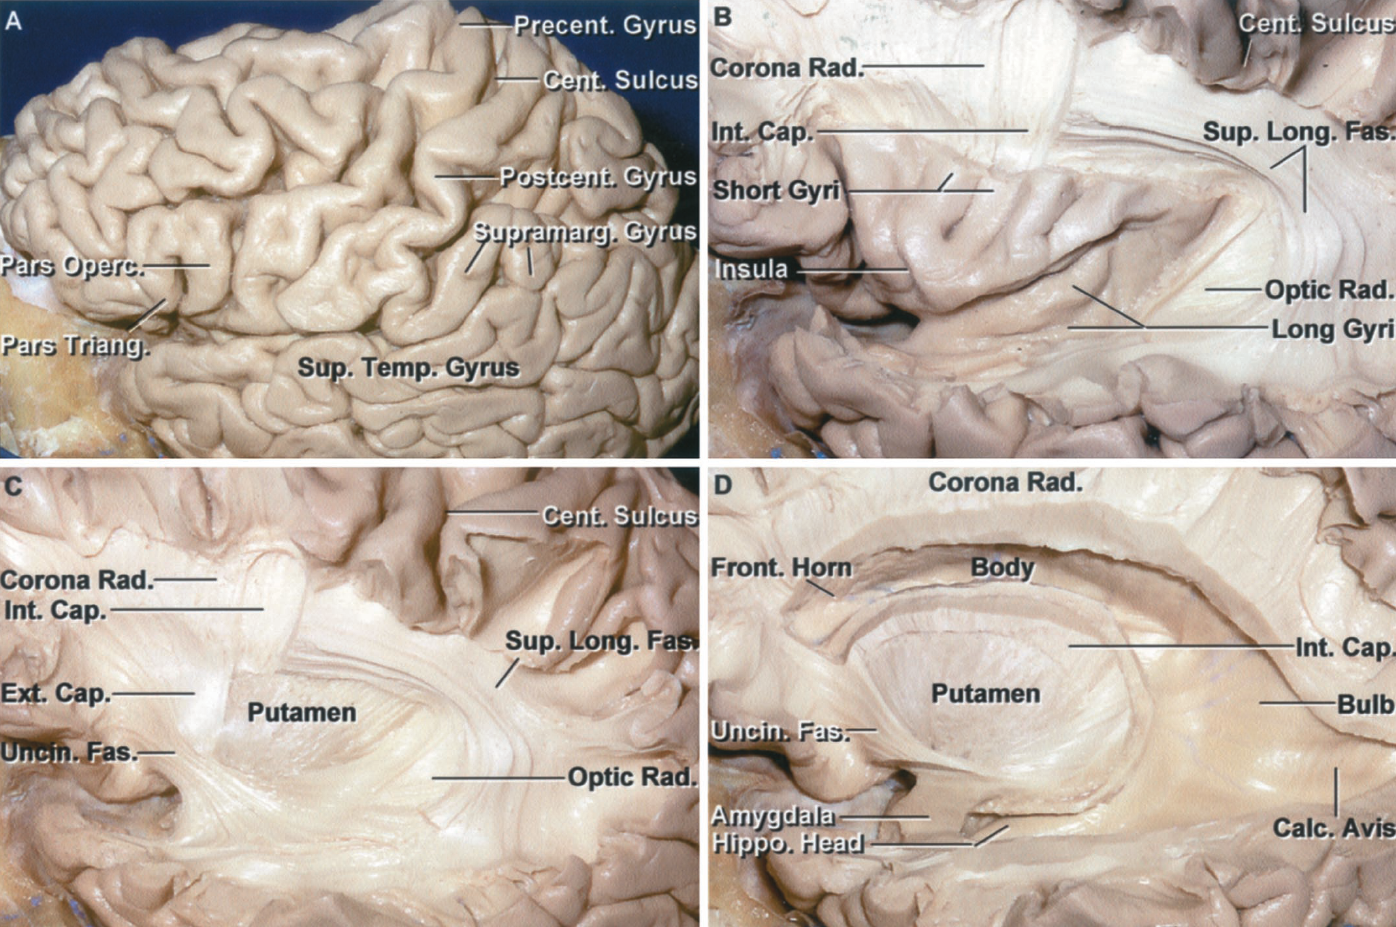 Figure 1.15 A-D. Stepwise fiber dissection. A, left cerebral hemisphere. The pre- and postcentral gyri adjoin the central sulcus. The precentral gyrus is located behind the pars opercularis and the postcentral gyrus is located in front of the supramarginal gyrus. B, the frontal, parietal, and temporal operculi have been removed to expose the insula. The corona radiata and some of the fibers joining the internal capsule are exposed above the insula. The insular surface is composed of long and short gyri. The superior longitudinal fasciculus courses around the outer margin of the insula and lentiform nucleus. The retrolenticular part of the optic radiations are exposed behind the insula and deep to the superior longitudinal fasciculus. C, the claustrum and the posterior part of the external capsule have been removed to expose the putamen. The anterior part of the external capsule has been preserved. The uncinate fasciculus interconnects the frontal and temporal lobes. The retrolenticular part of the optic radiations is exposed behind the lentiform nucleus. The superior longitudinal fasciculus courses superficial to the optic radiations and deep to the extreme and external capsules. D, the frontal horn, body, atrium, and temporal horn of the lateral ventricle have been exposed. The fibers of the external capsule superficial to the putamen have been removed. The internal capsule courses medial to the lentiform nucleus, the outer segment of which is formed by the putamen. The lower part of the uncinate fasciculus has been removed to expose amygdala and the head of the hippocampus. The amygdala forms the anterior wall of the temporal horn. The calcar avis, overlying the deep end of the calcarine sulcus, and the bulb of the corpus callosum, overlying the fibers of the forceps major, are exposed in the medial wall of the atrium.